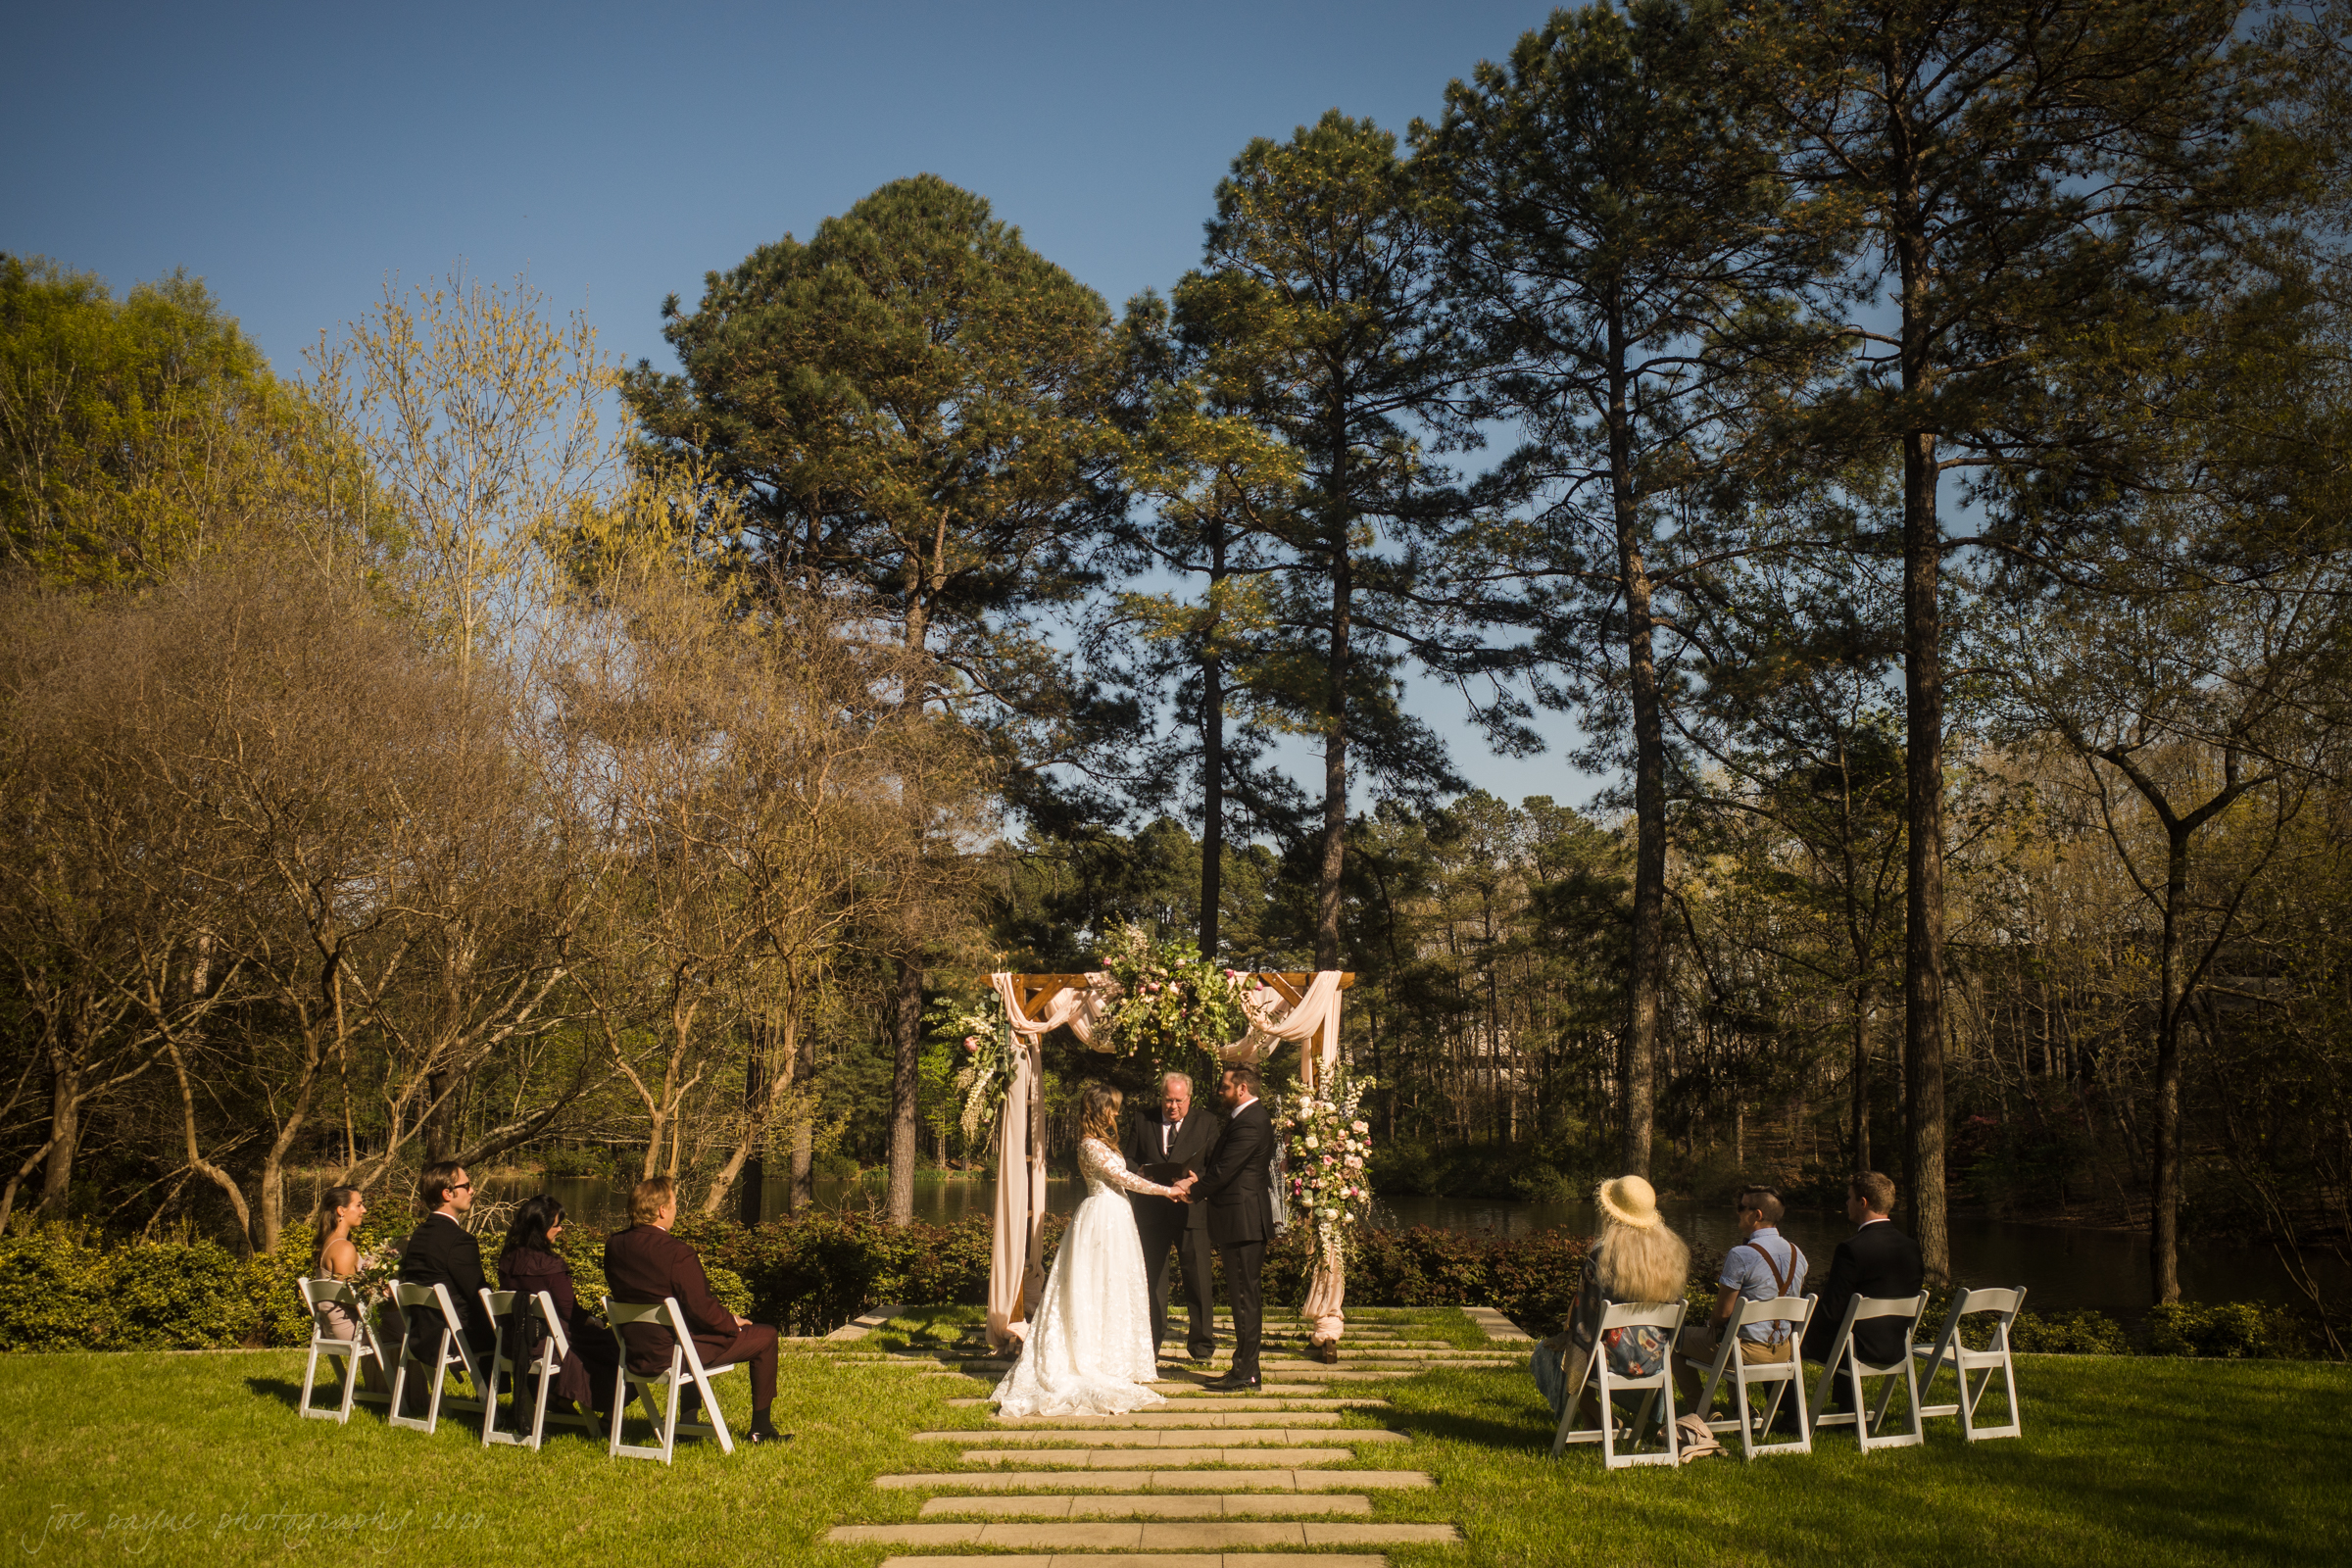 umstead hotel park wedding photography brittany harrison 18